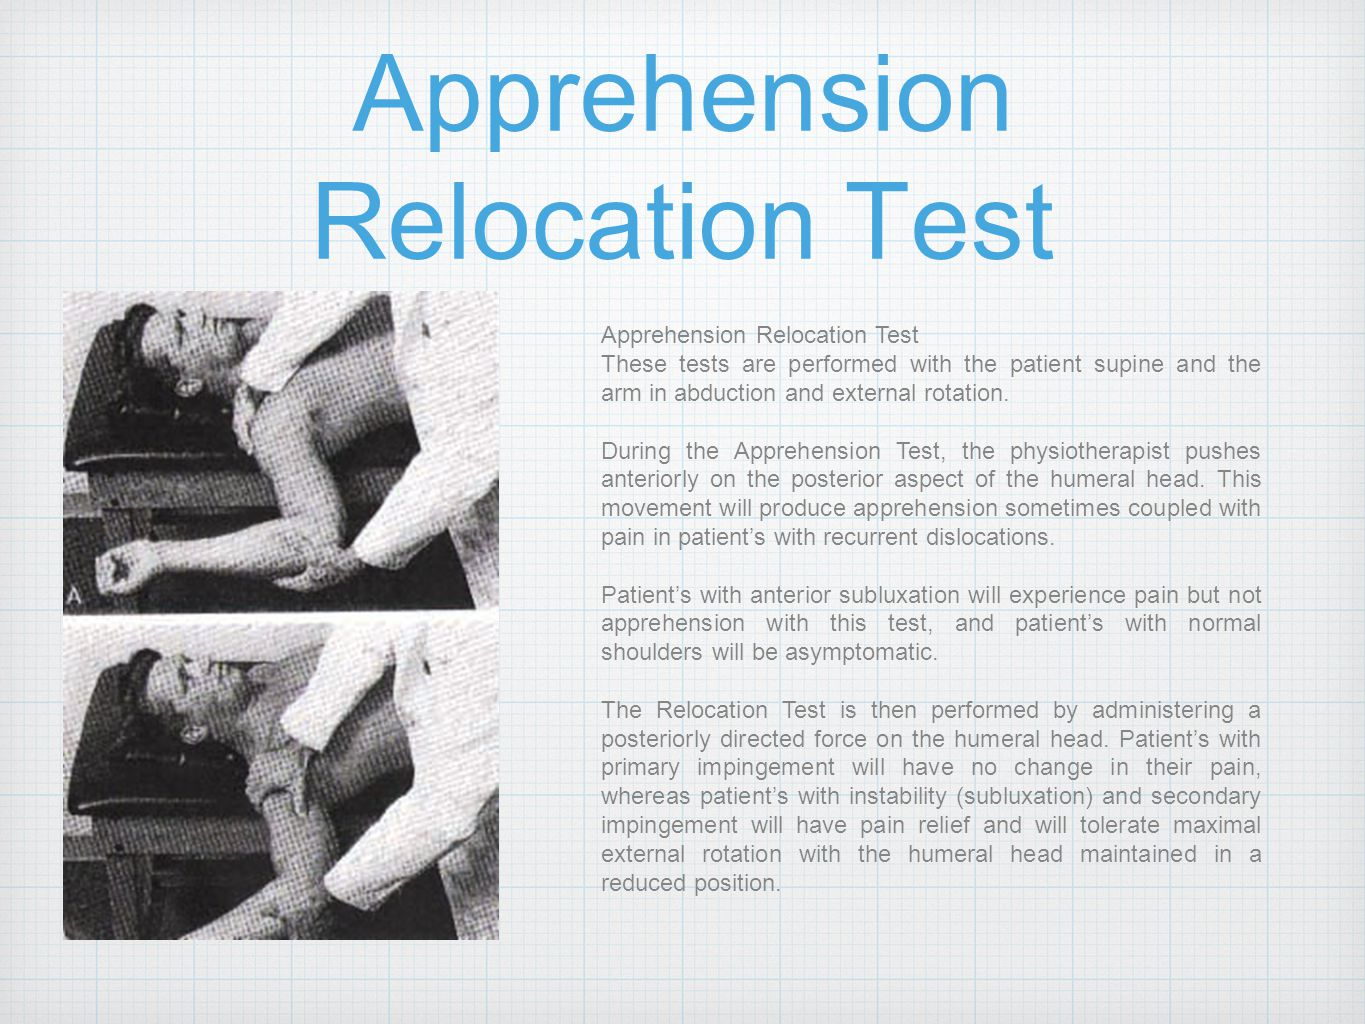 Apprehension Relocation Test These tests are performed with the patient supine and the arm in abduction and external rotation. During the Apprehension